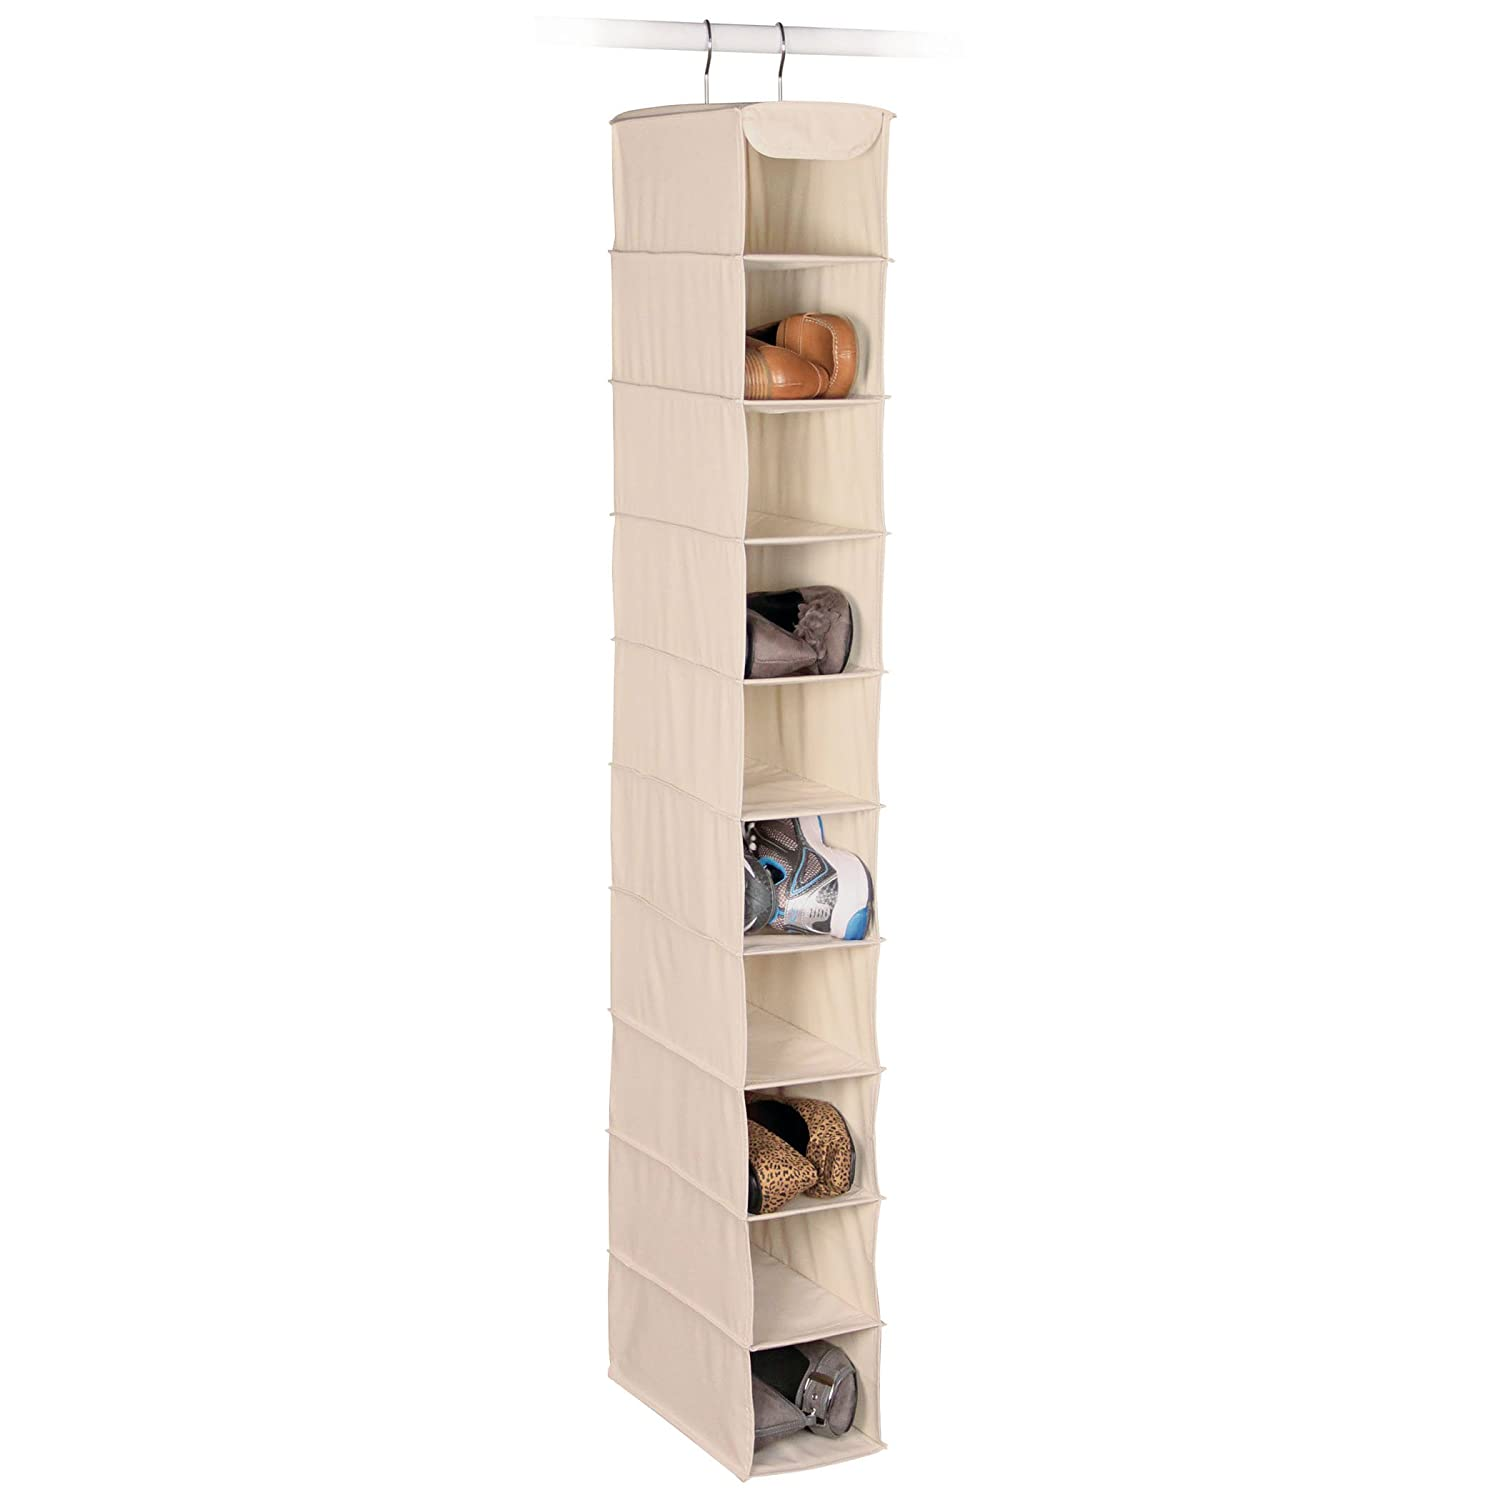 Richards Homewares Hanging Ten Shoe Largeシェルフorganizer-canvas / Natural 50